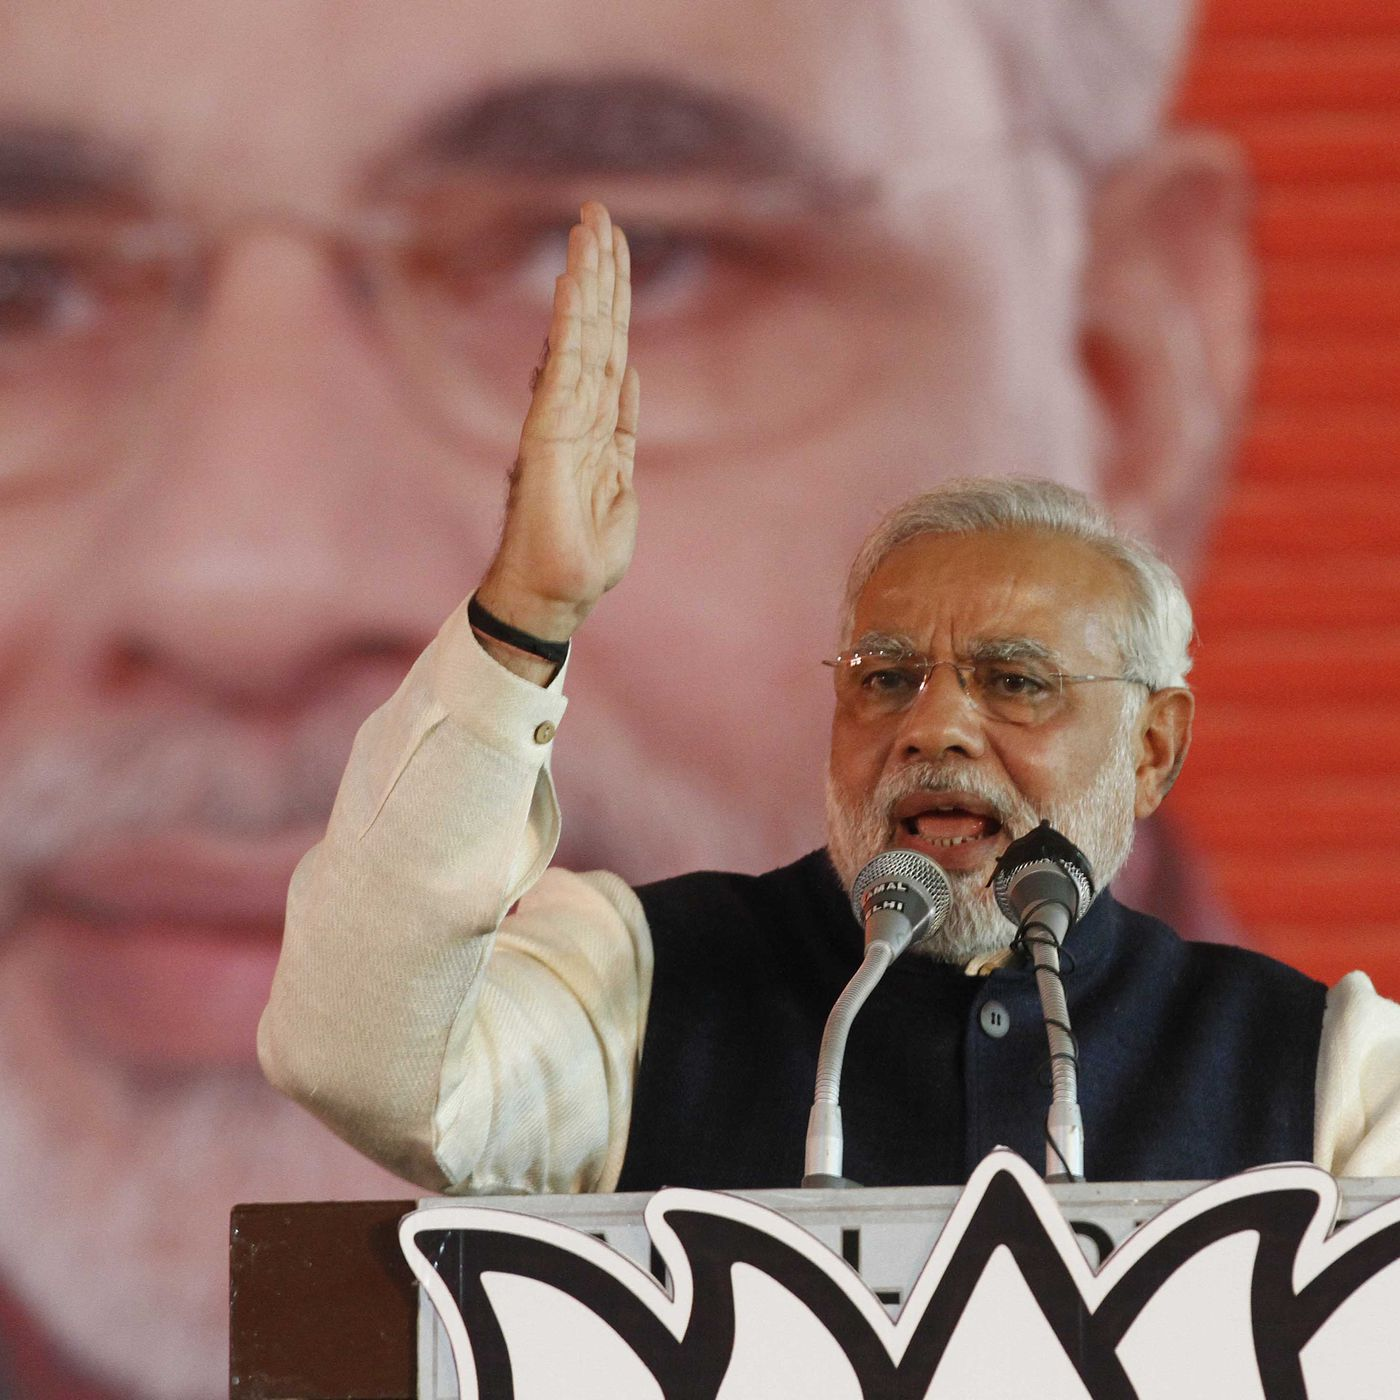 Everything you need to know about Narendra Modi's 2014 rise